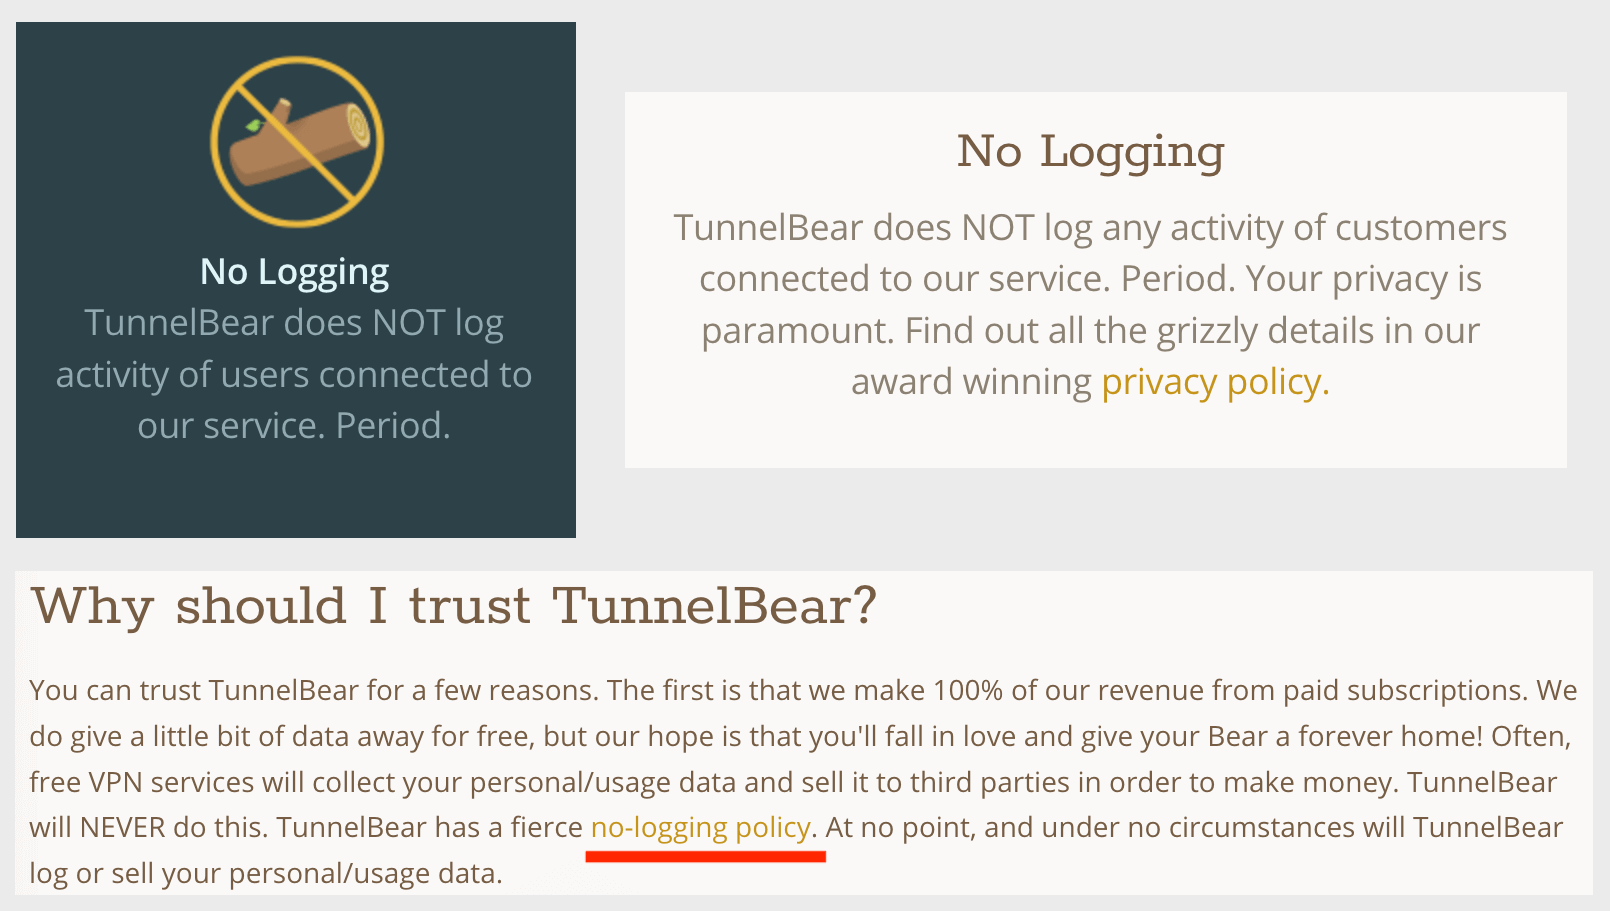 tunnelbear logs